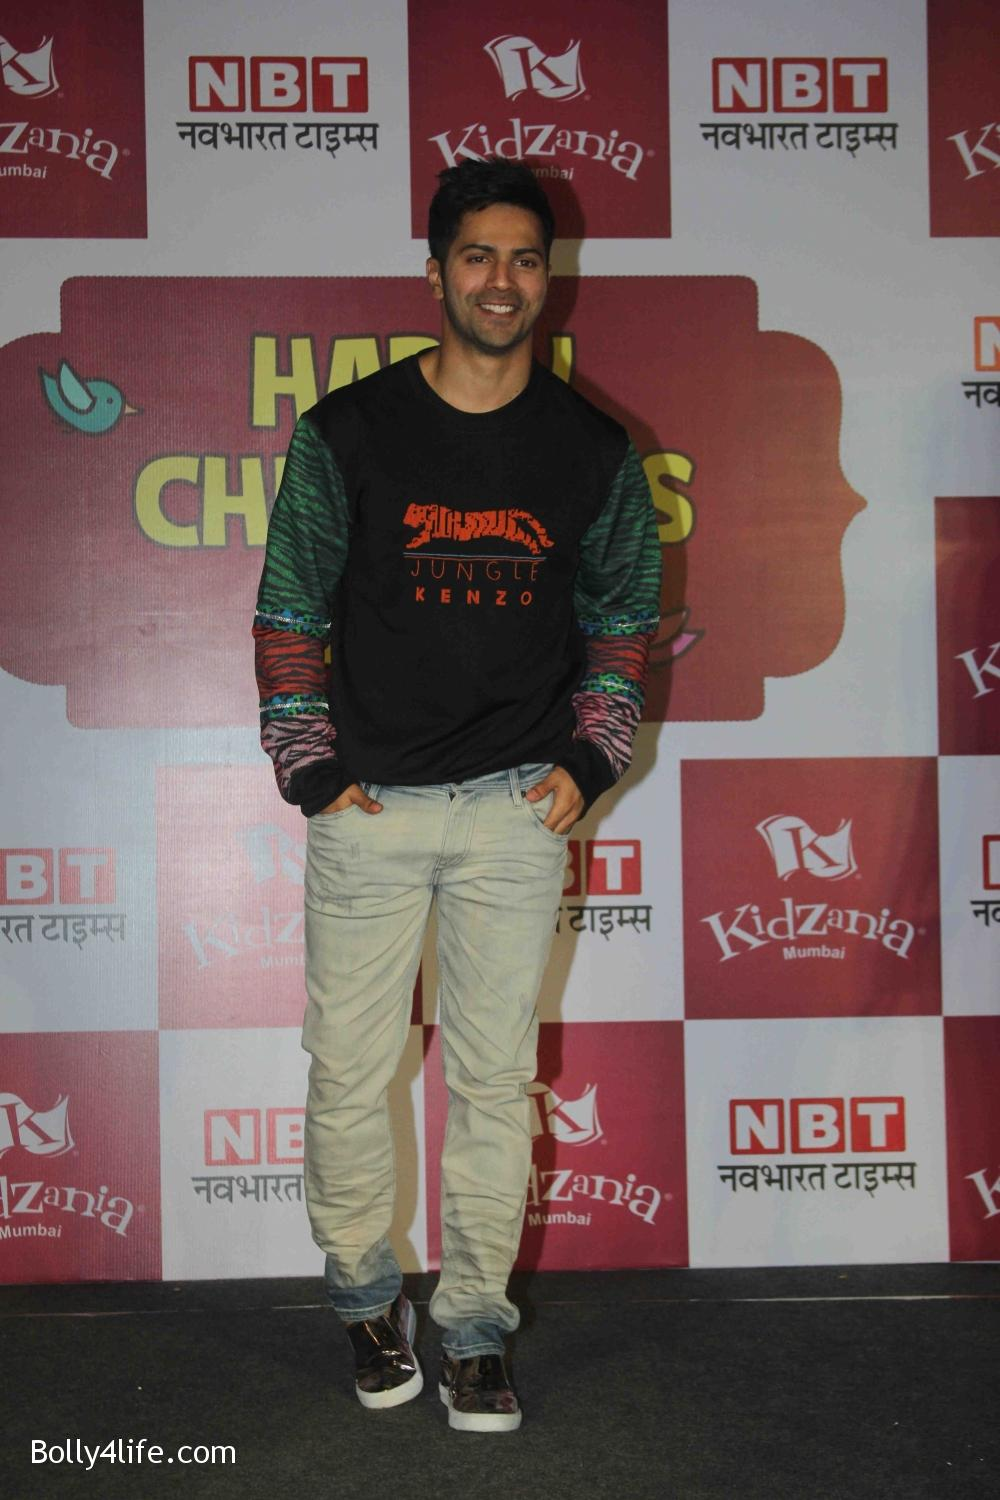 Varun-Dhawan-celebrates-Childrens-Day-at-KidZania-2.jpg